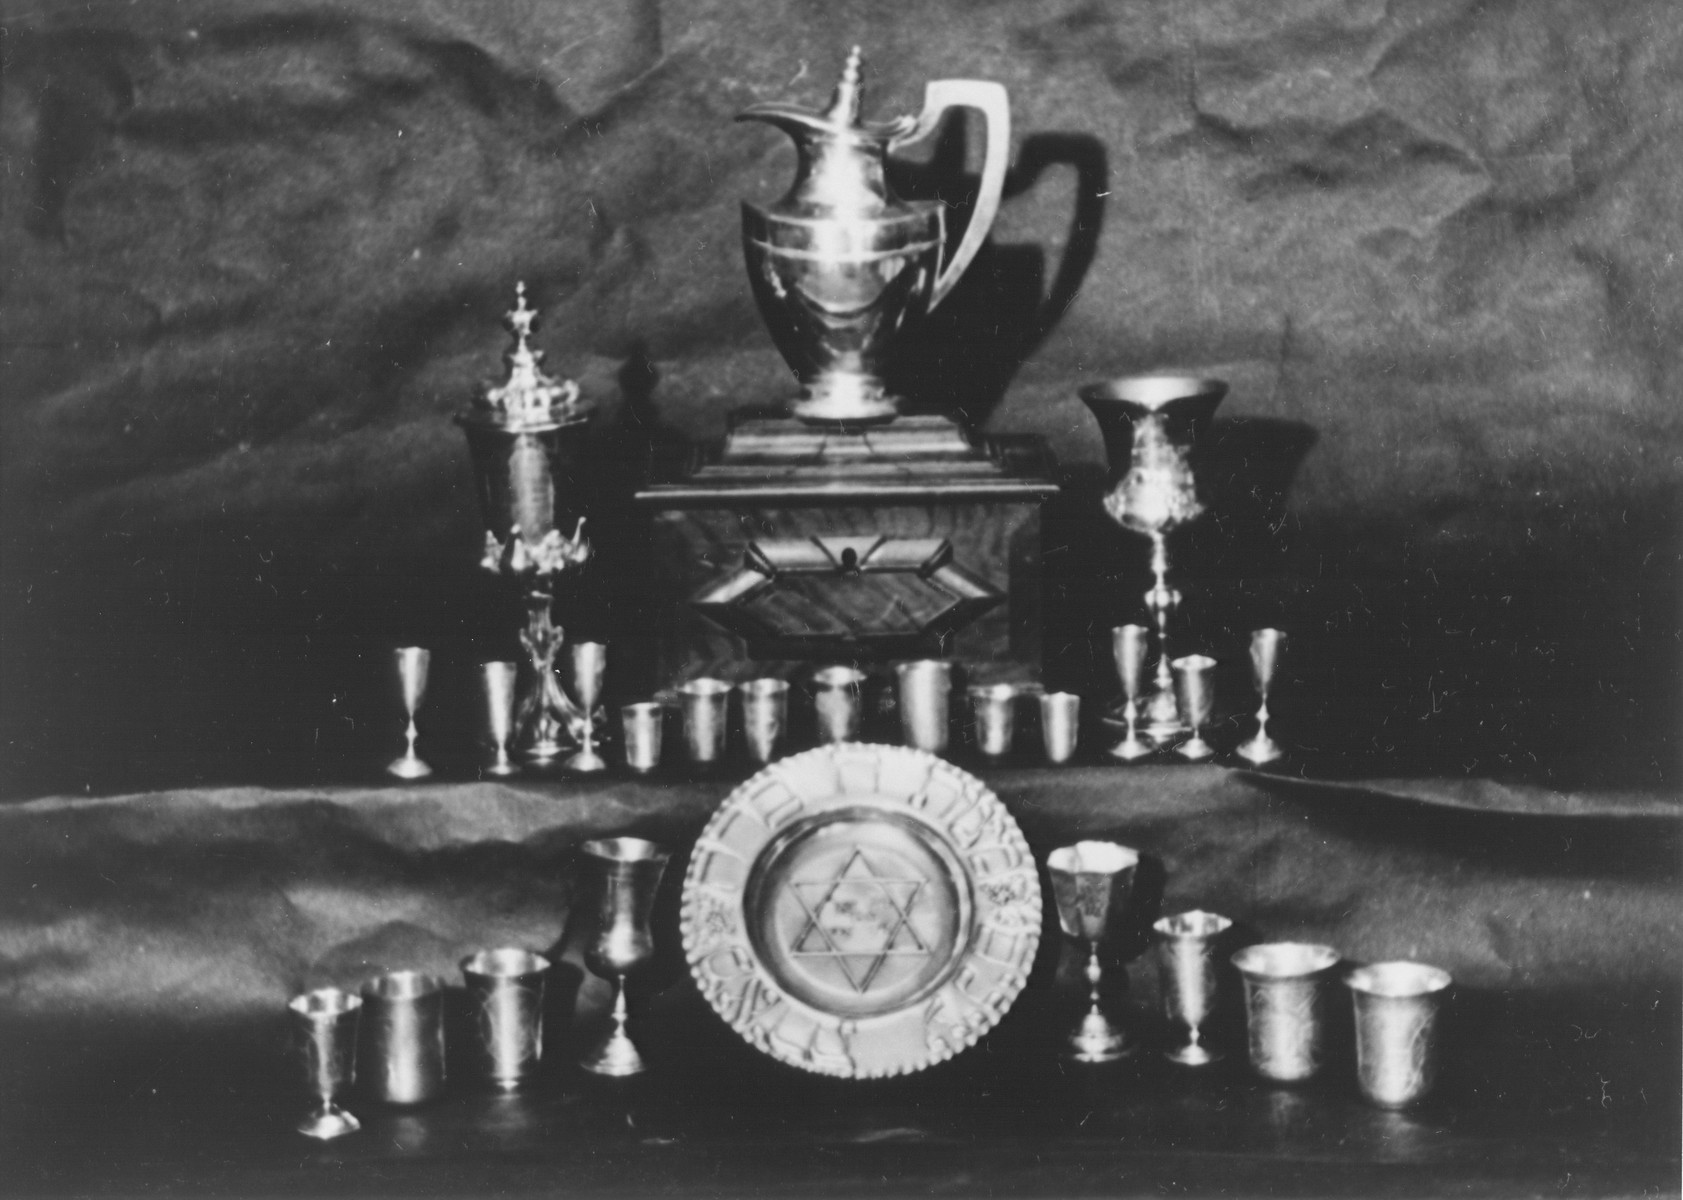 Display of confiscated silver kiddish cups and other Jewish religious articles.